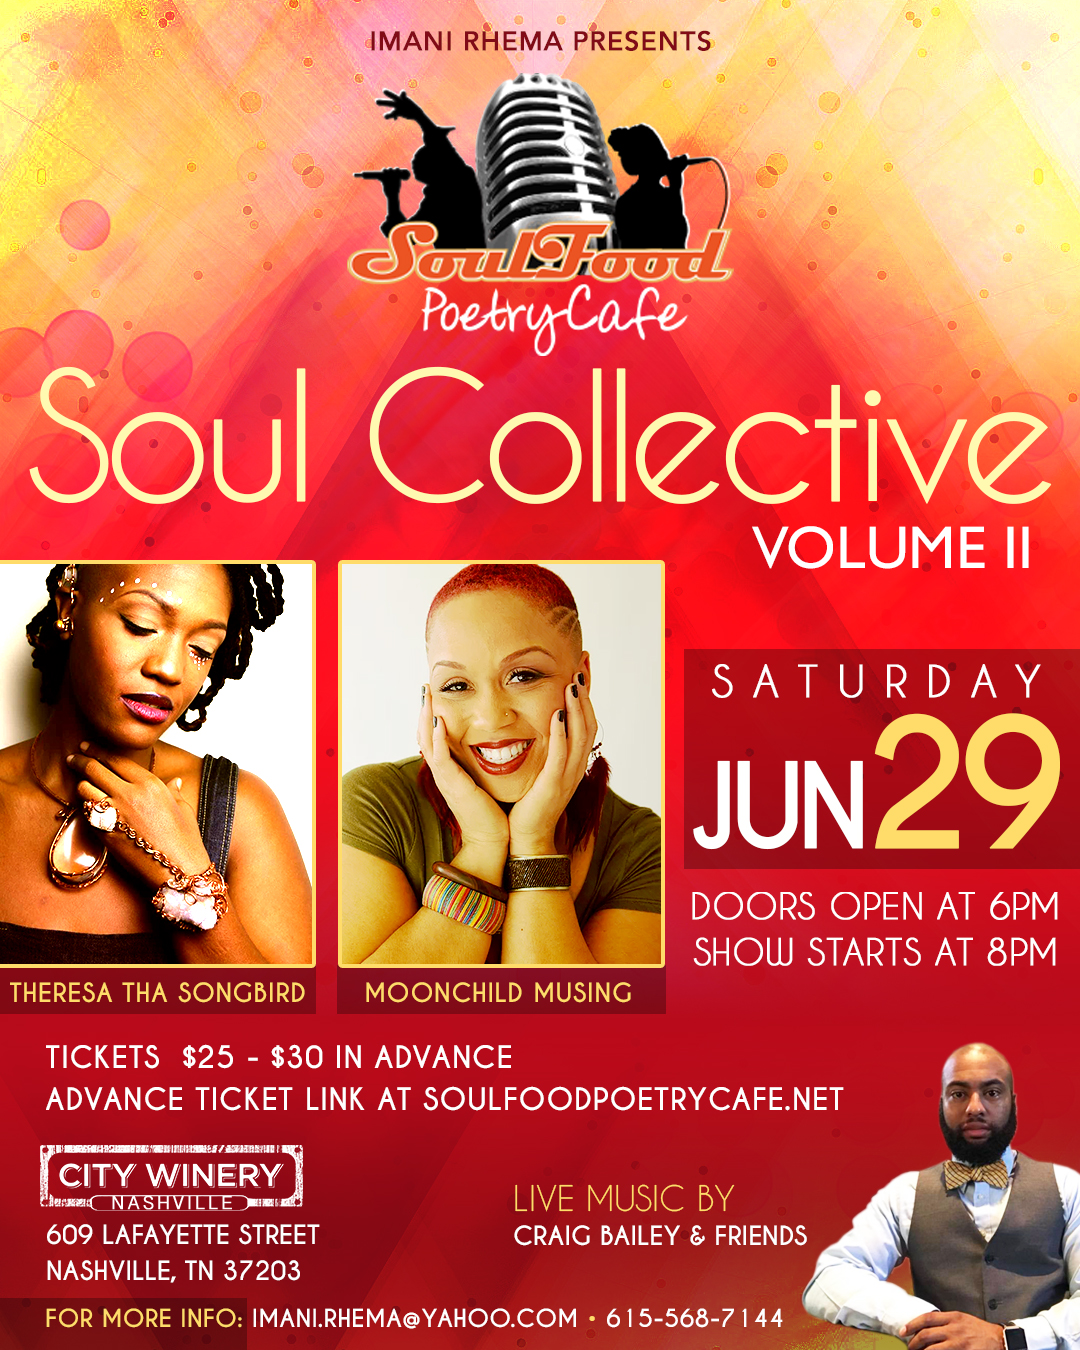 soul-food-poetry-cafe-soul-collective-eflyer.jpg